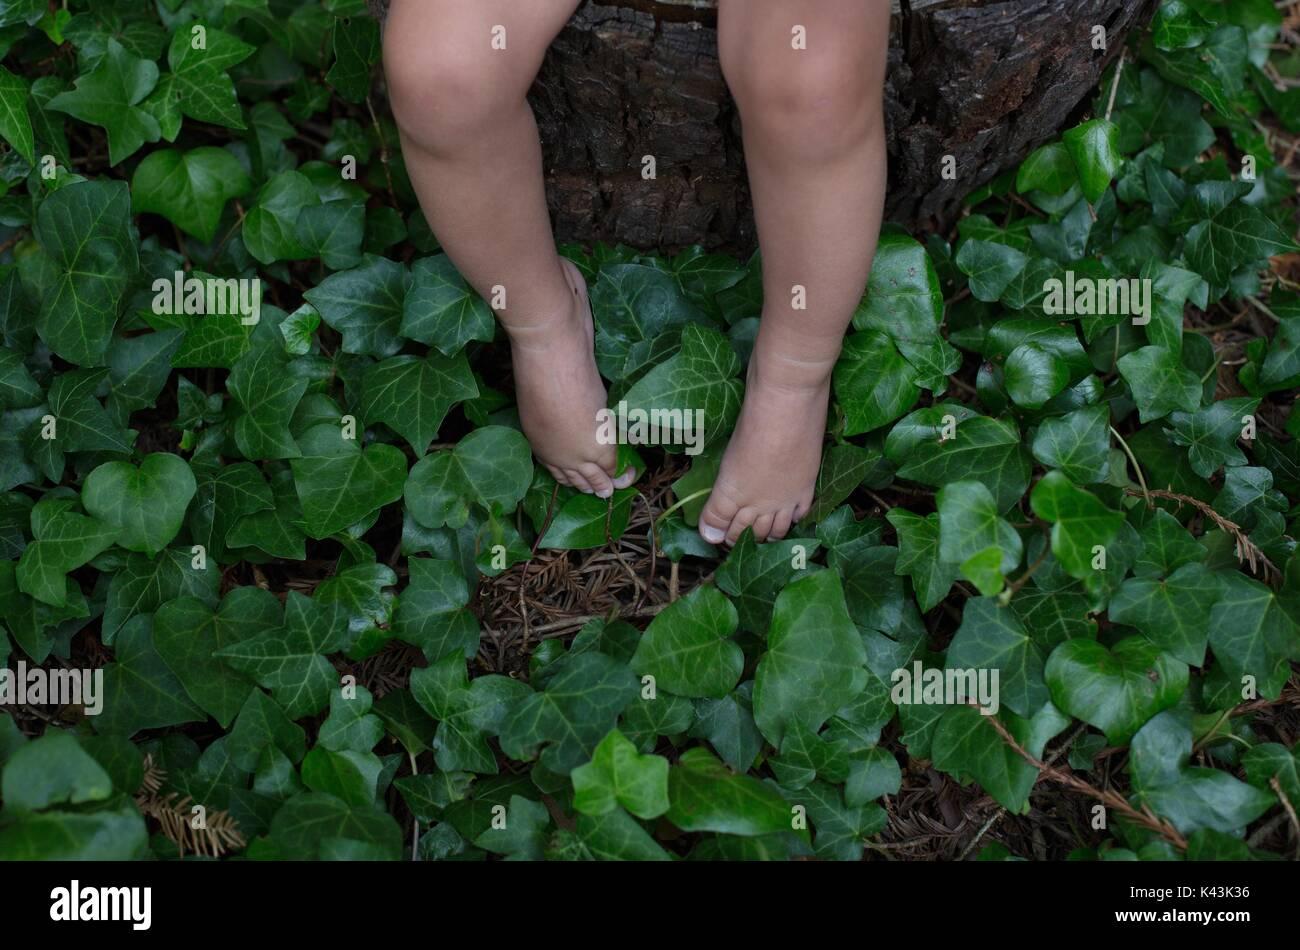 The feet of a small child on an ivy covered forest floor. - Stock Image